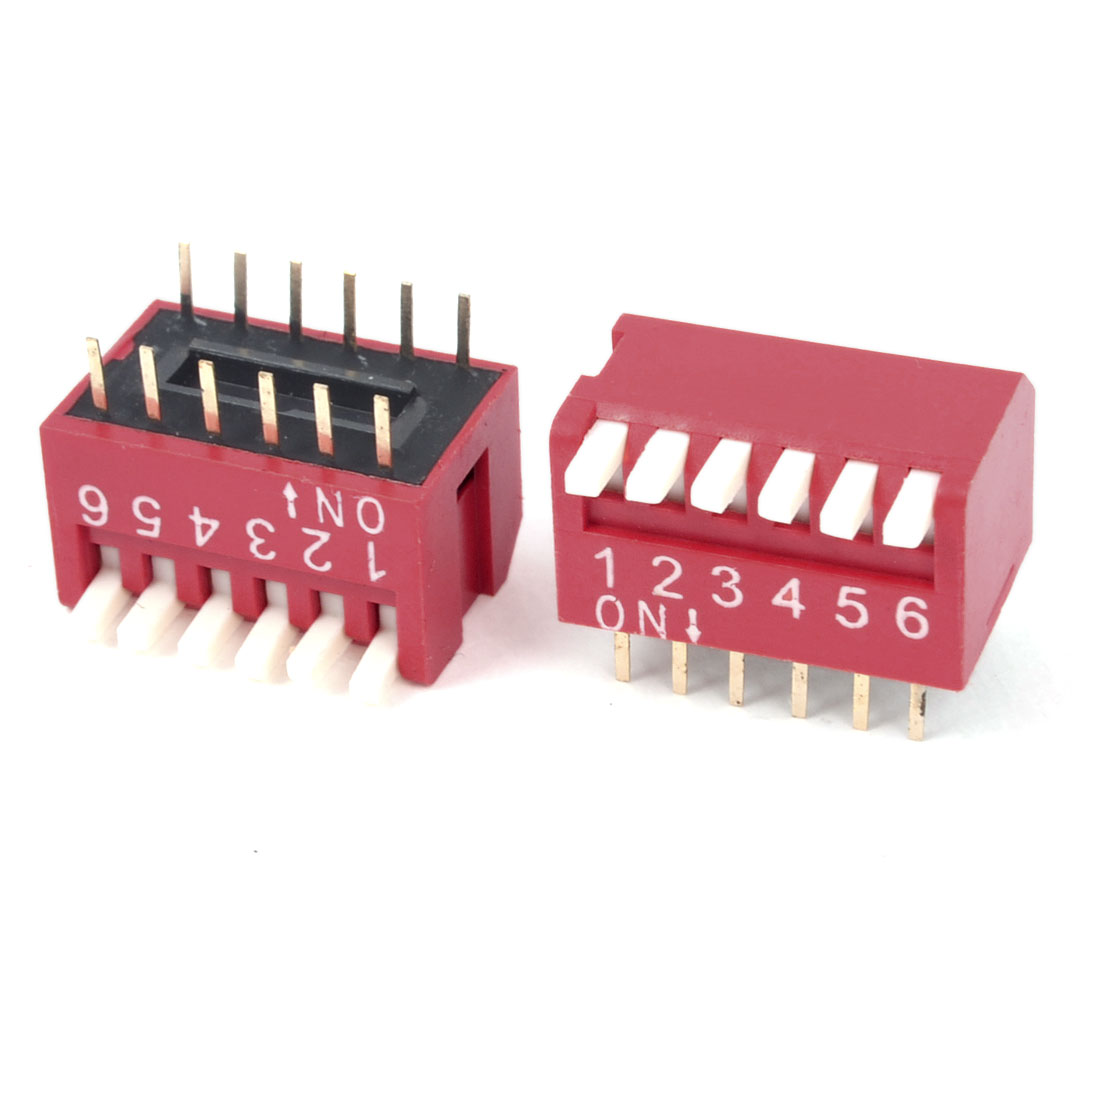 2PCS 6 Way 12 Pin 2.54mm Pitch PCB Mounted Piano Type DIL / DIP Switch Red